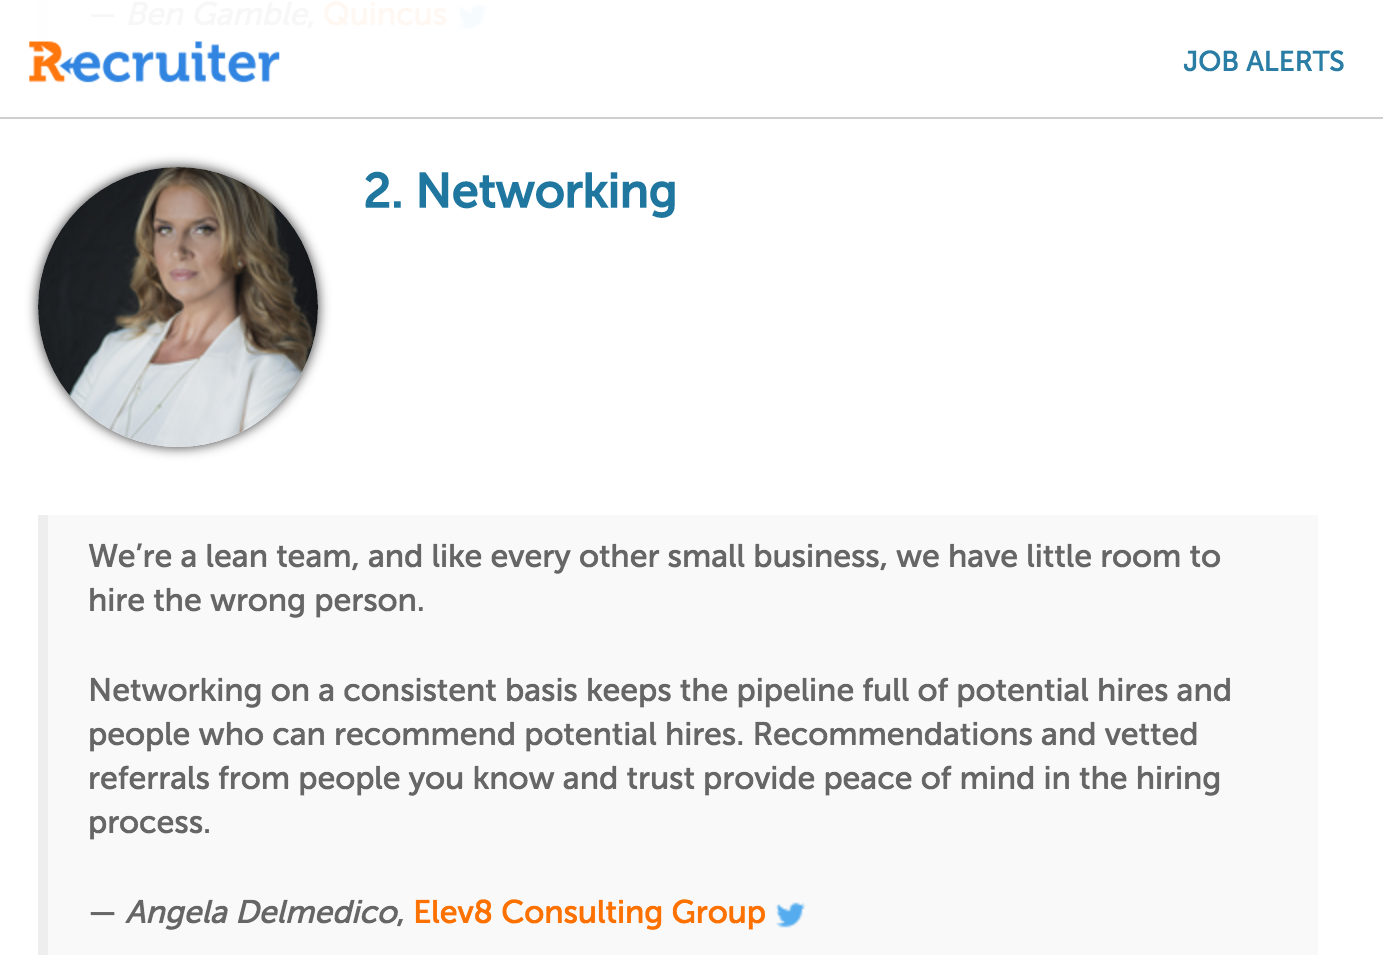 Angela Delmedico, Elev8 Consulting Group Recruiter